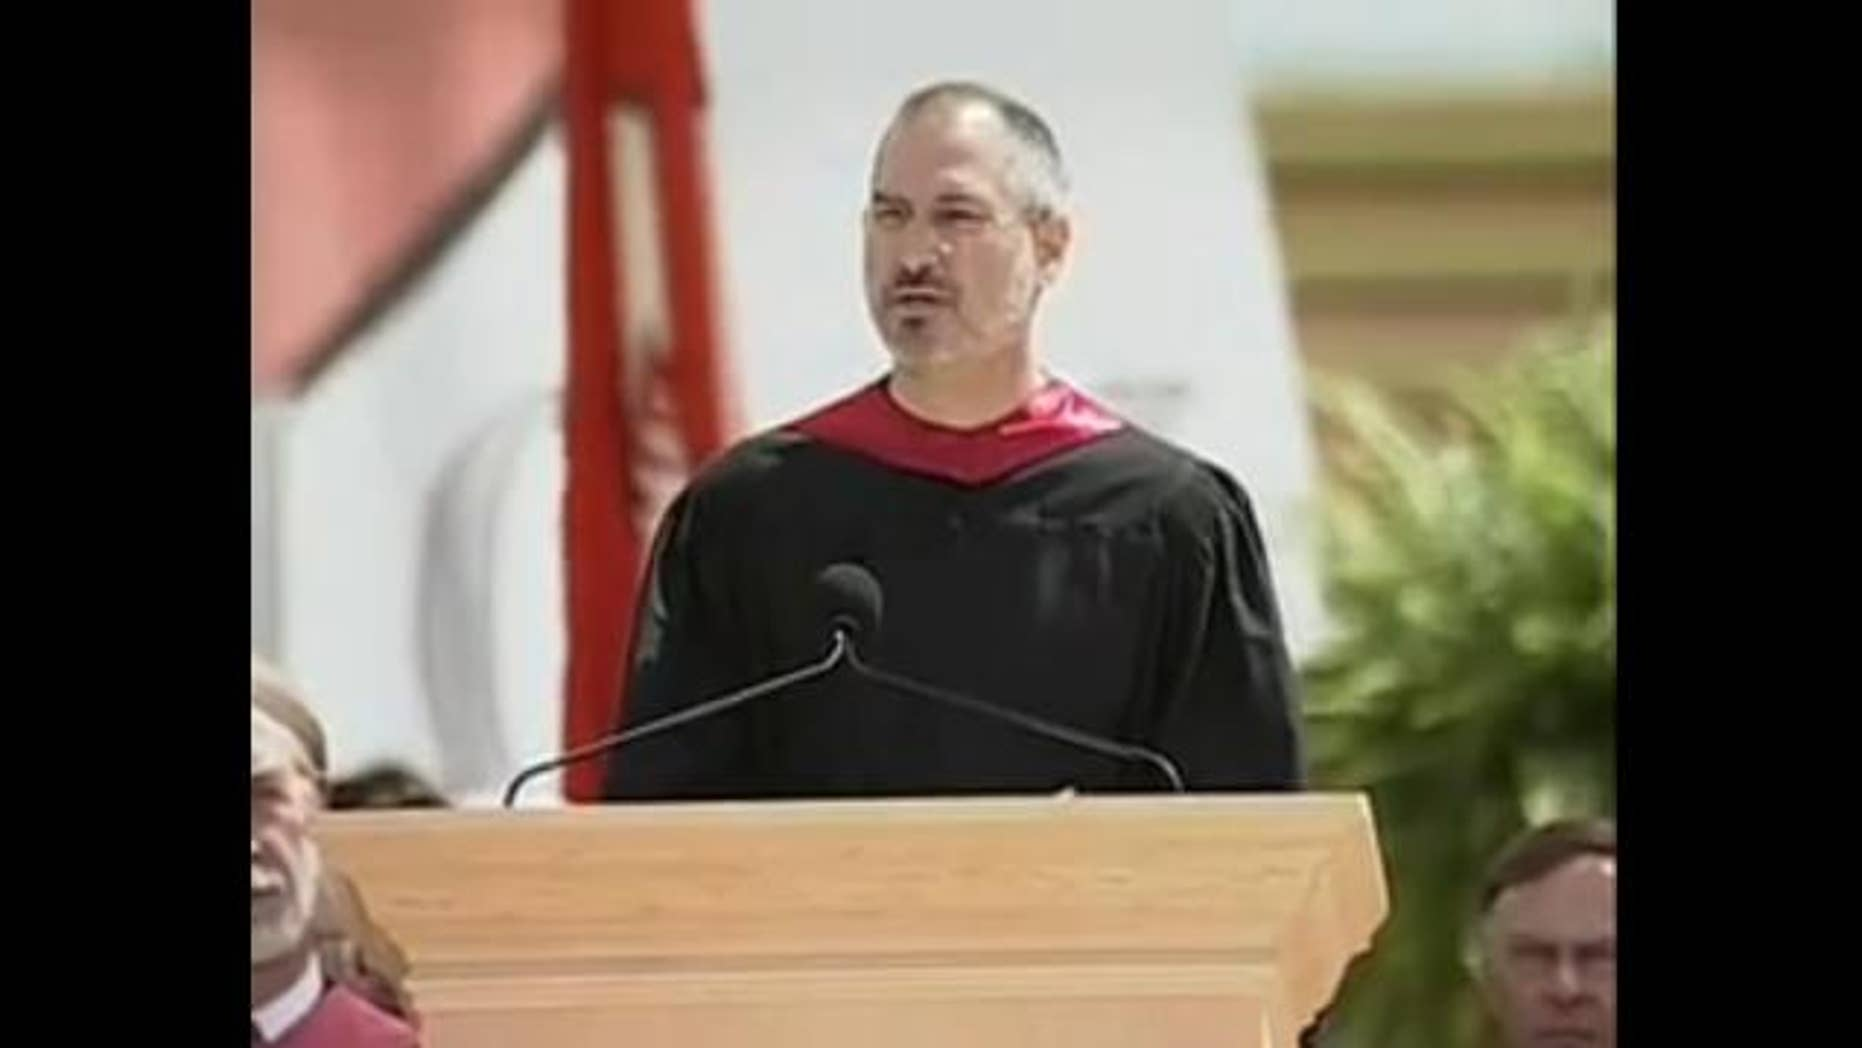 In 2005 Stanford Commencement Speech, Steve Jobs Muses on Death